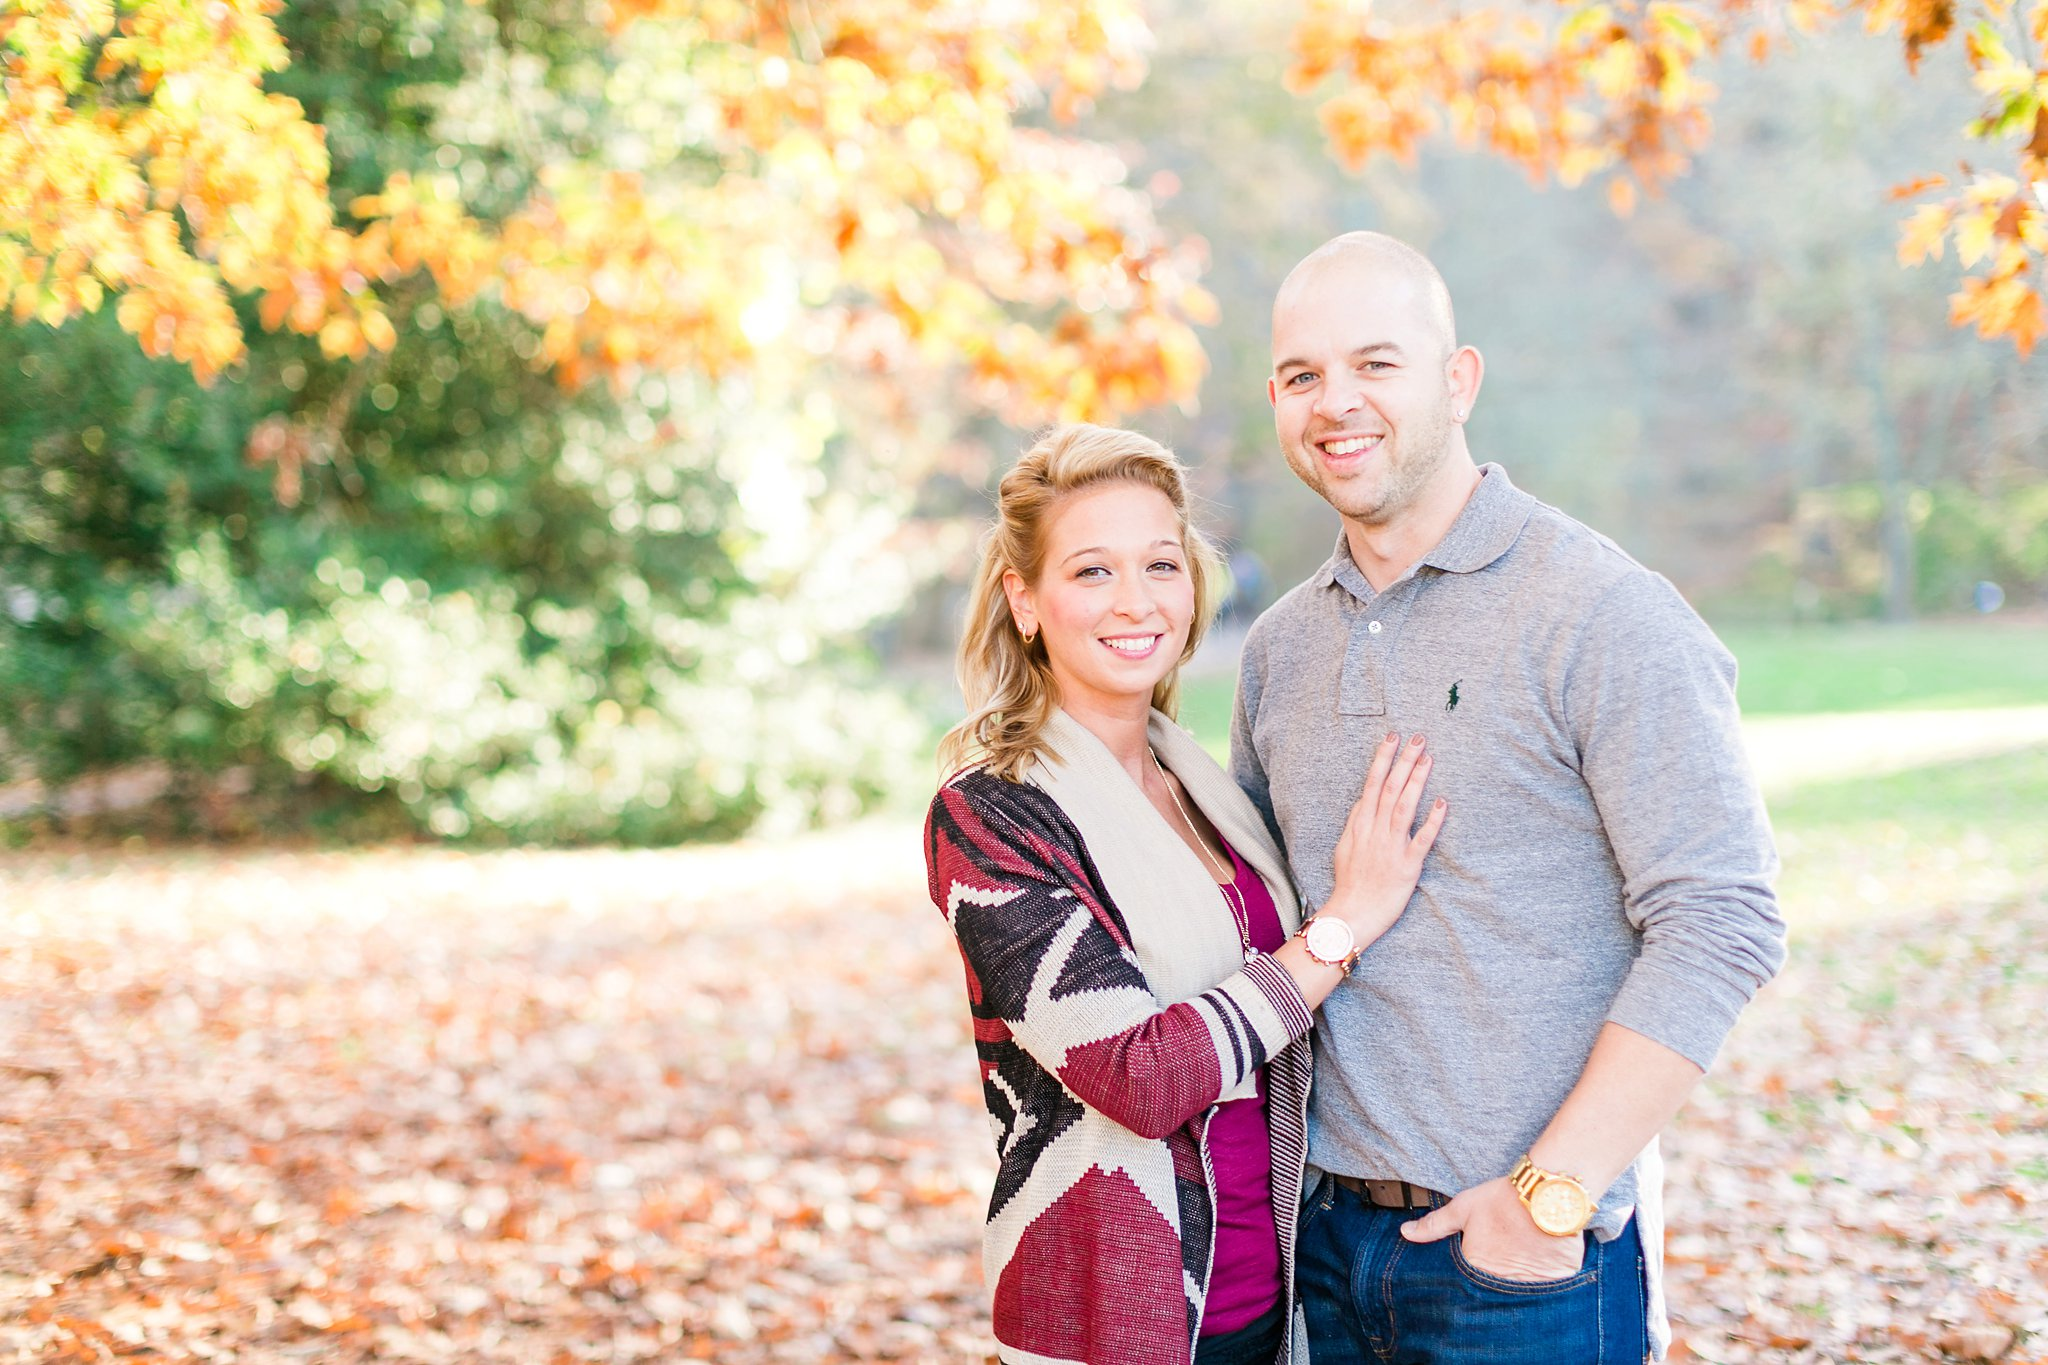 Rock Creek Park Engagement Photos DC Wedding Photographer Megan Kelsey Photography Katie & Conor-4.jpg